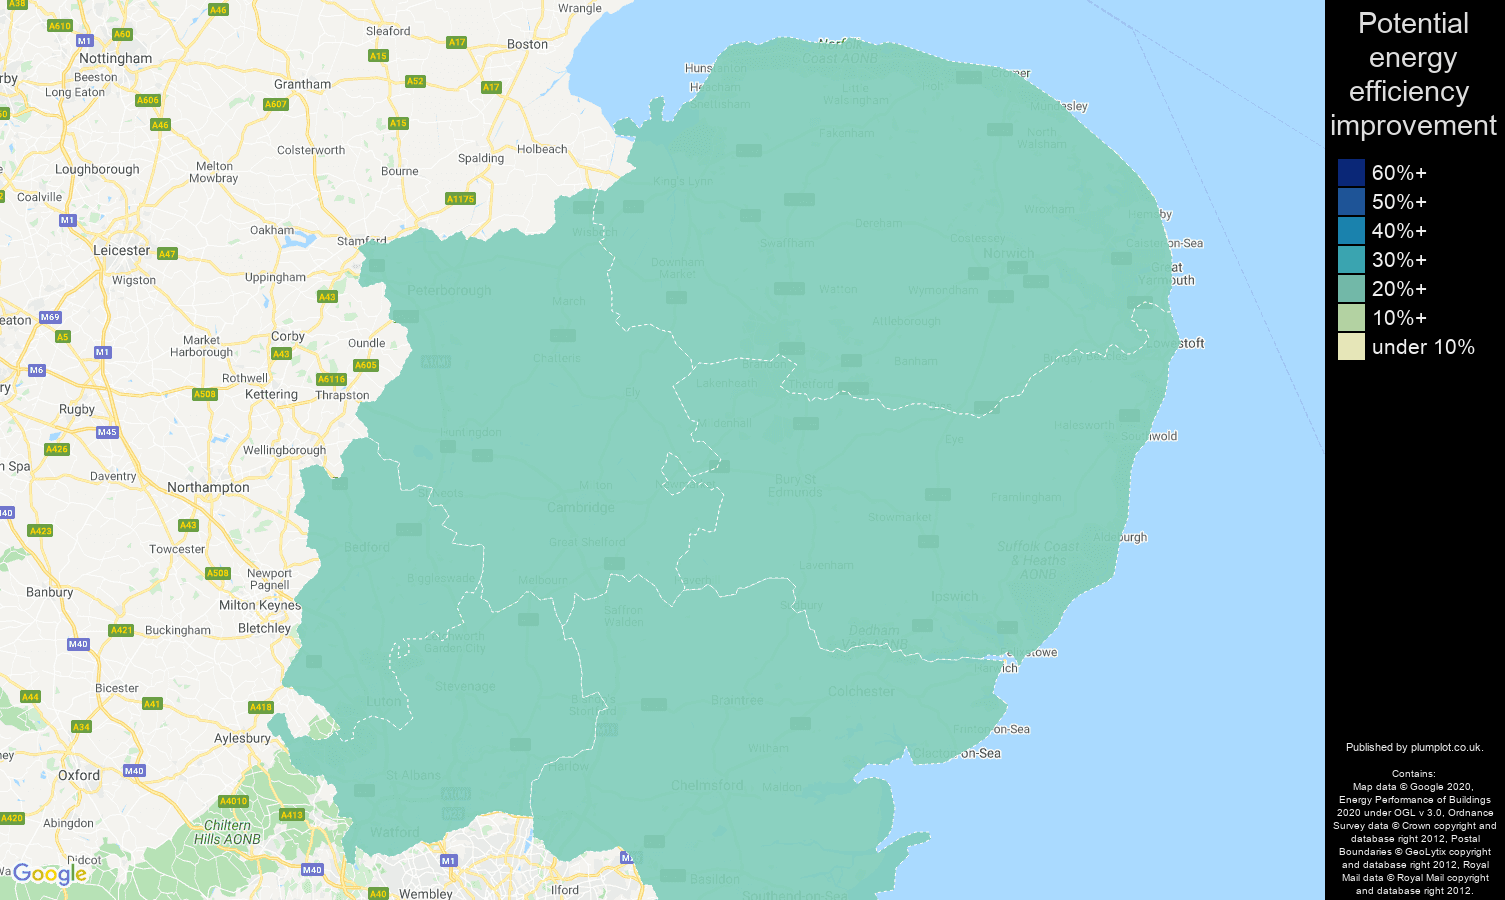 East of England map of potential energy efficiency improvement of houses